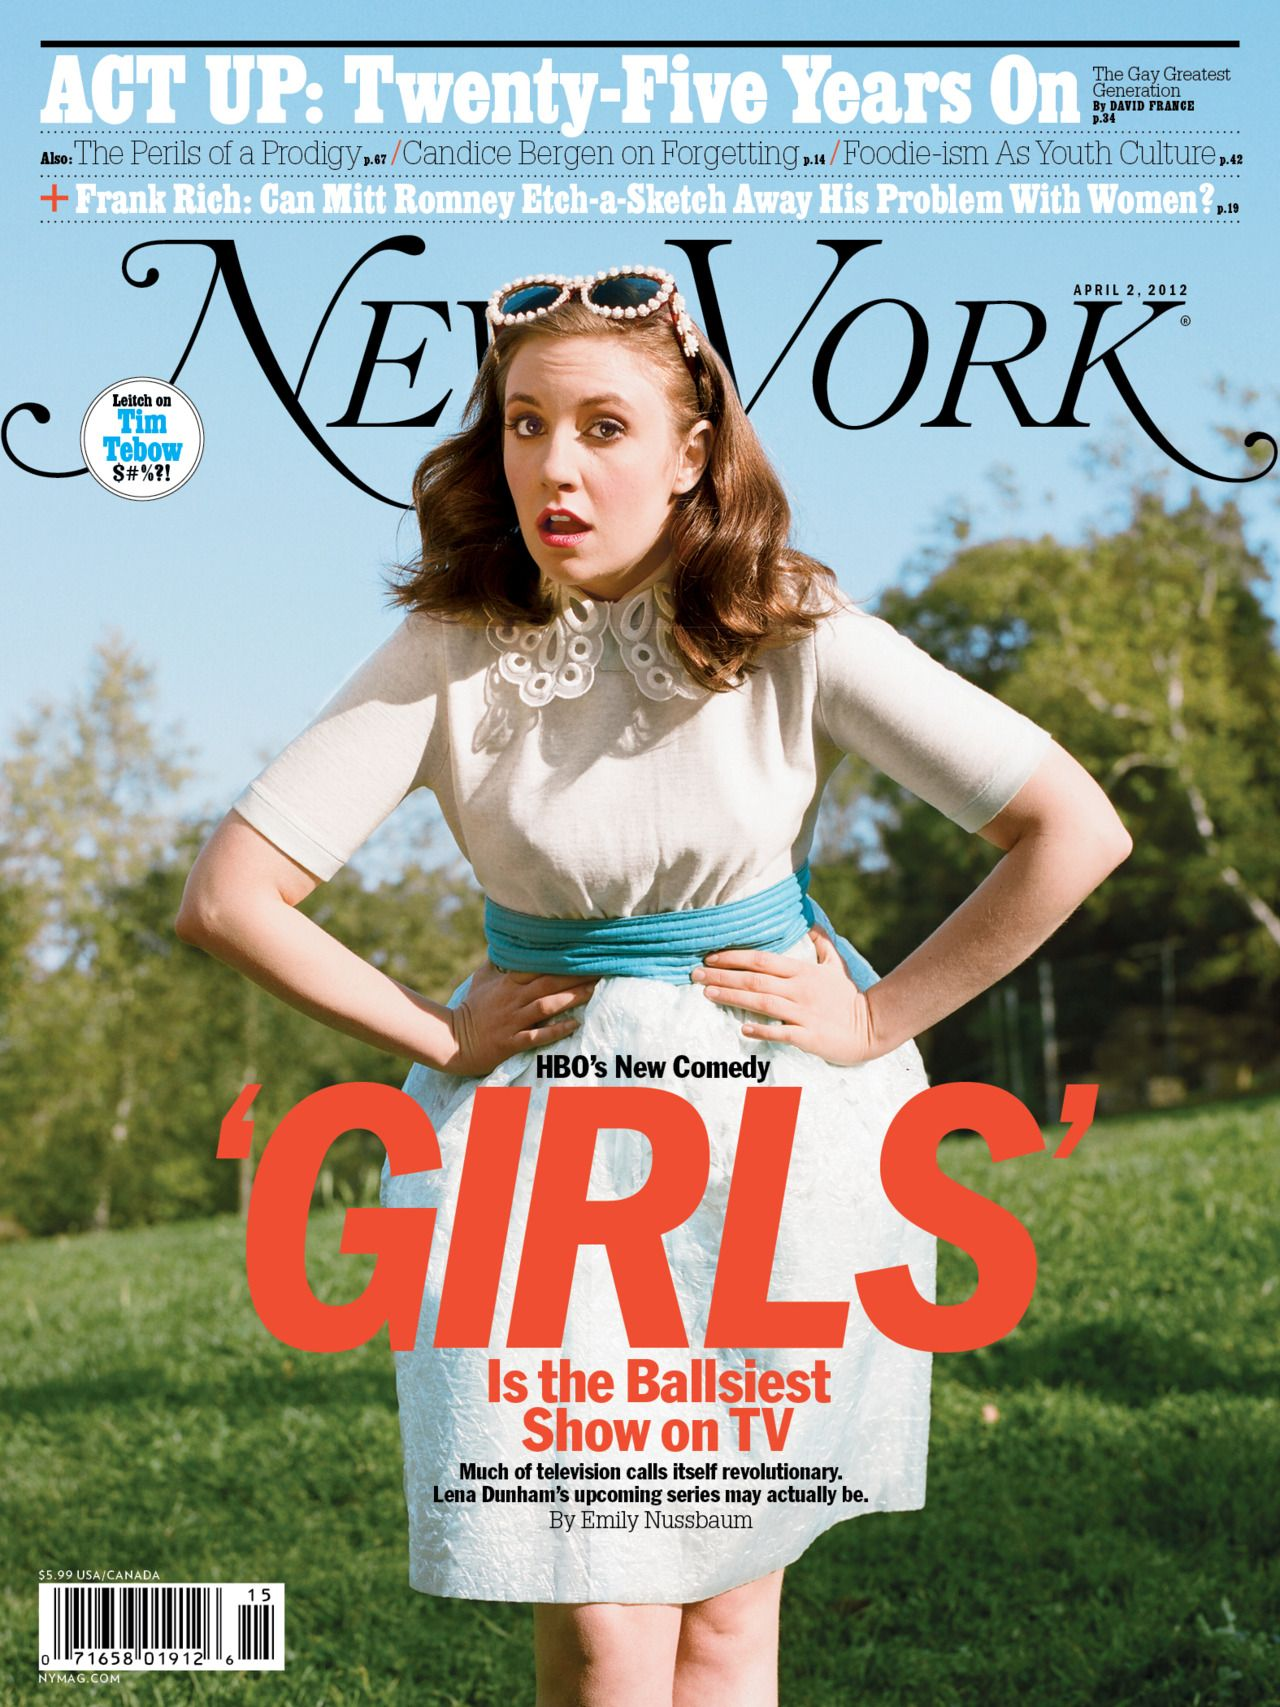 a white woman in a blue and red dress poses on the cover of New York Magazine